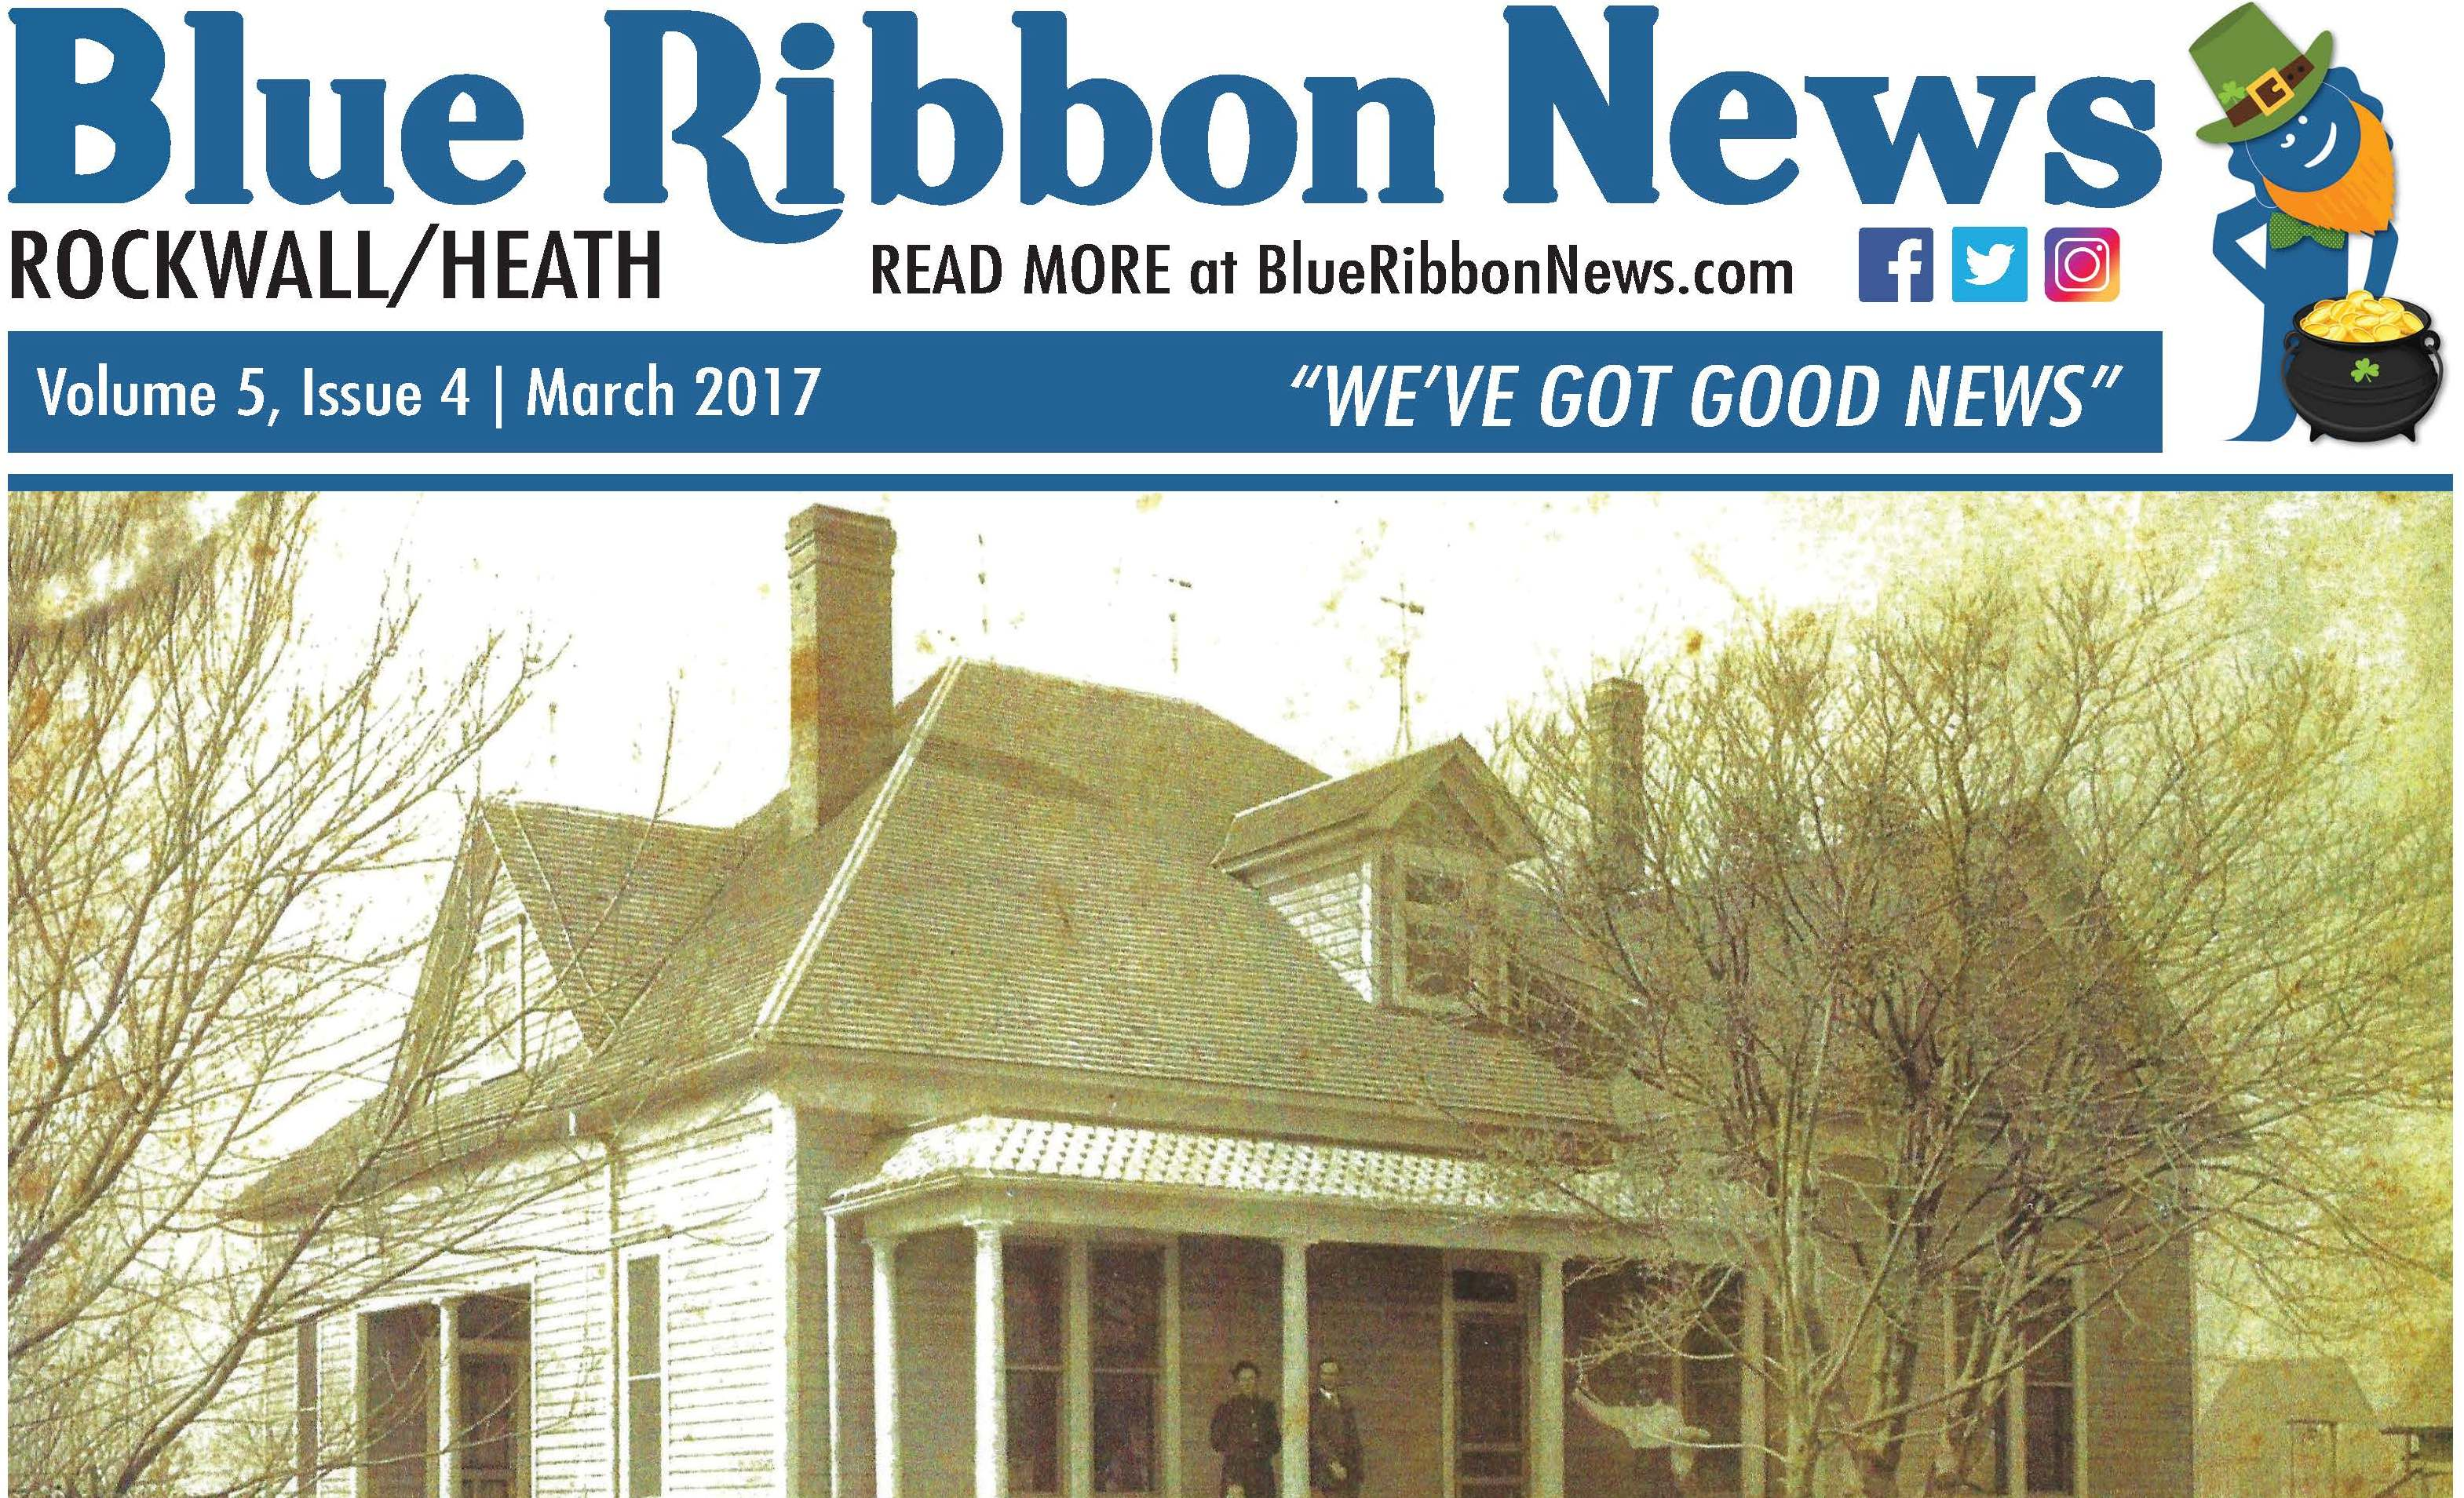 Blue Ribbon News March print edition hits mailboxes throughout Rockwall, Heath